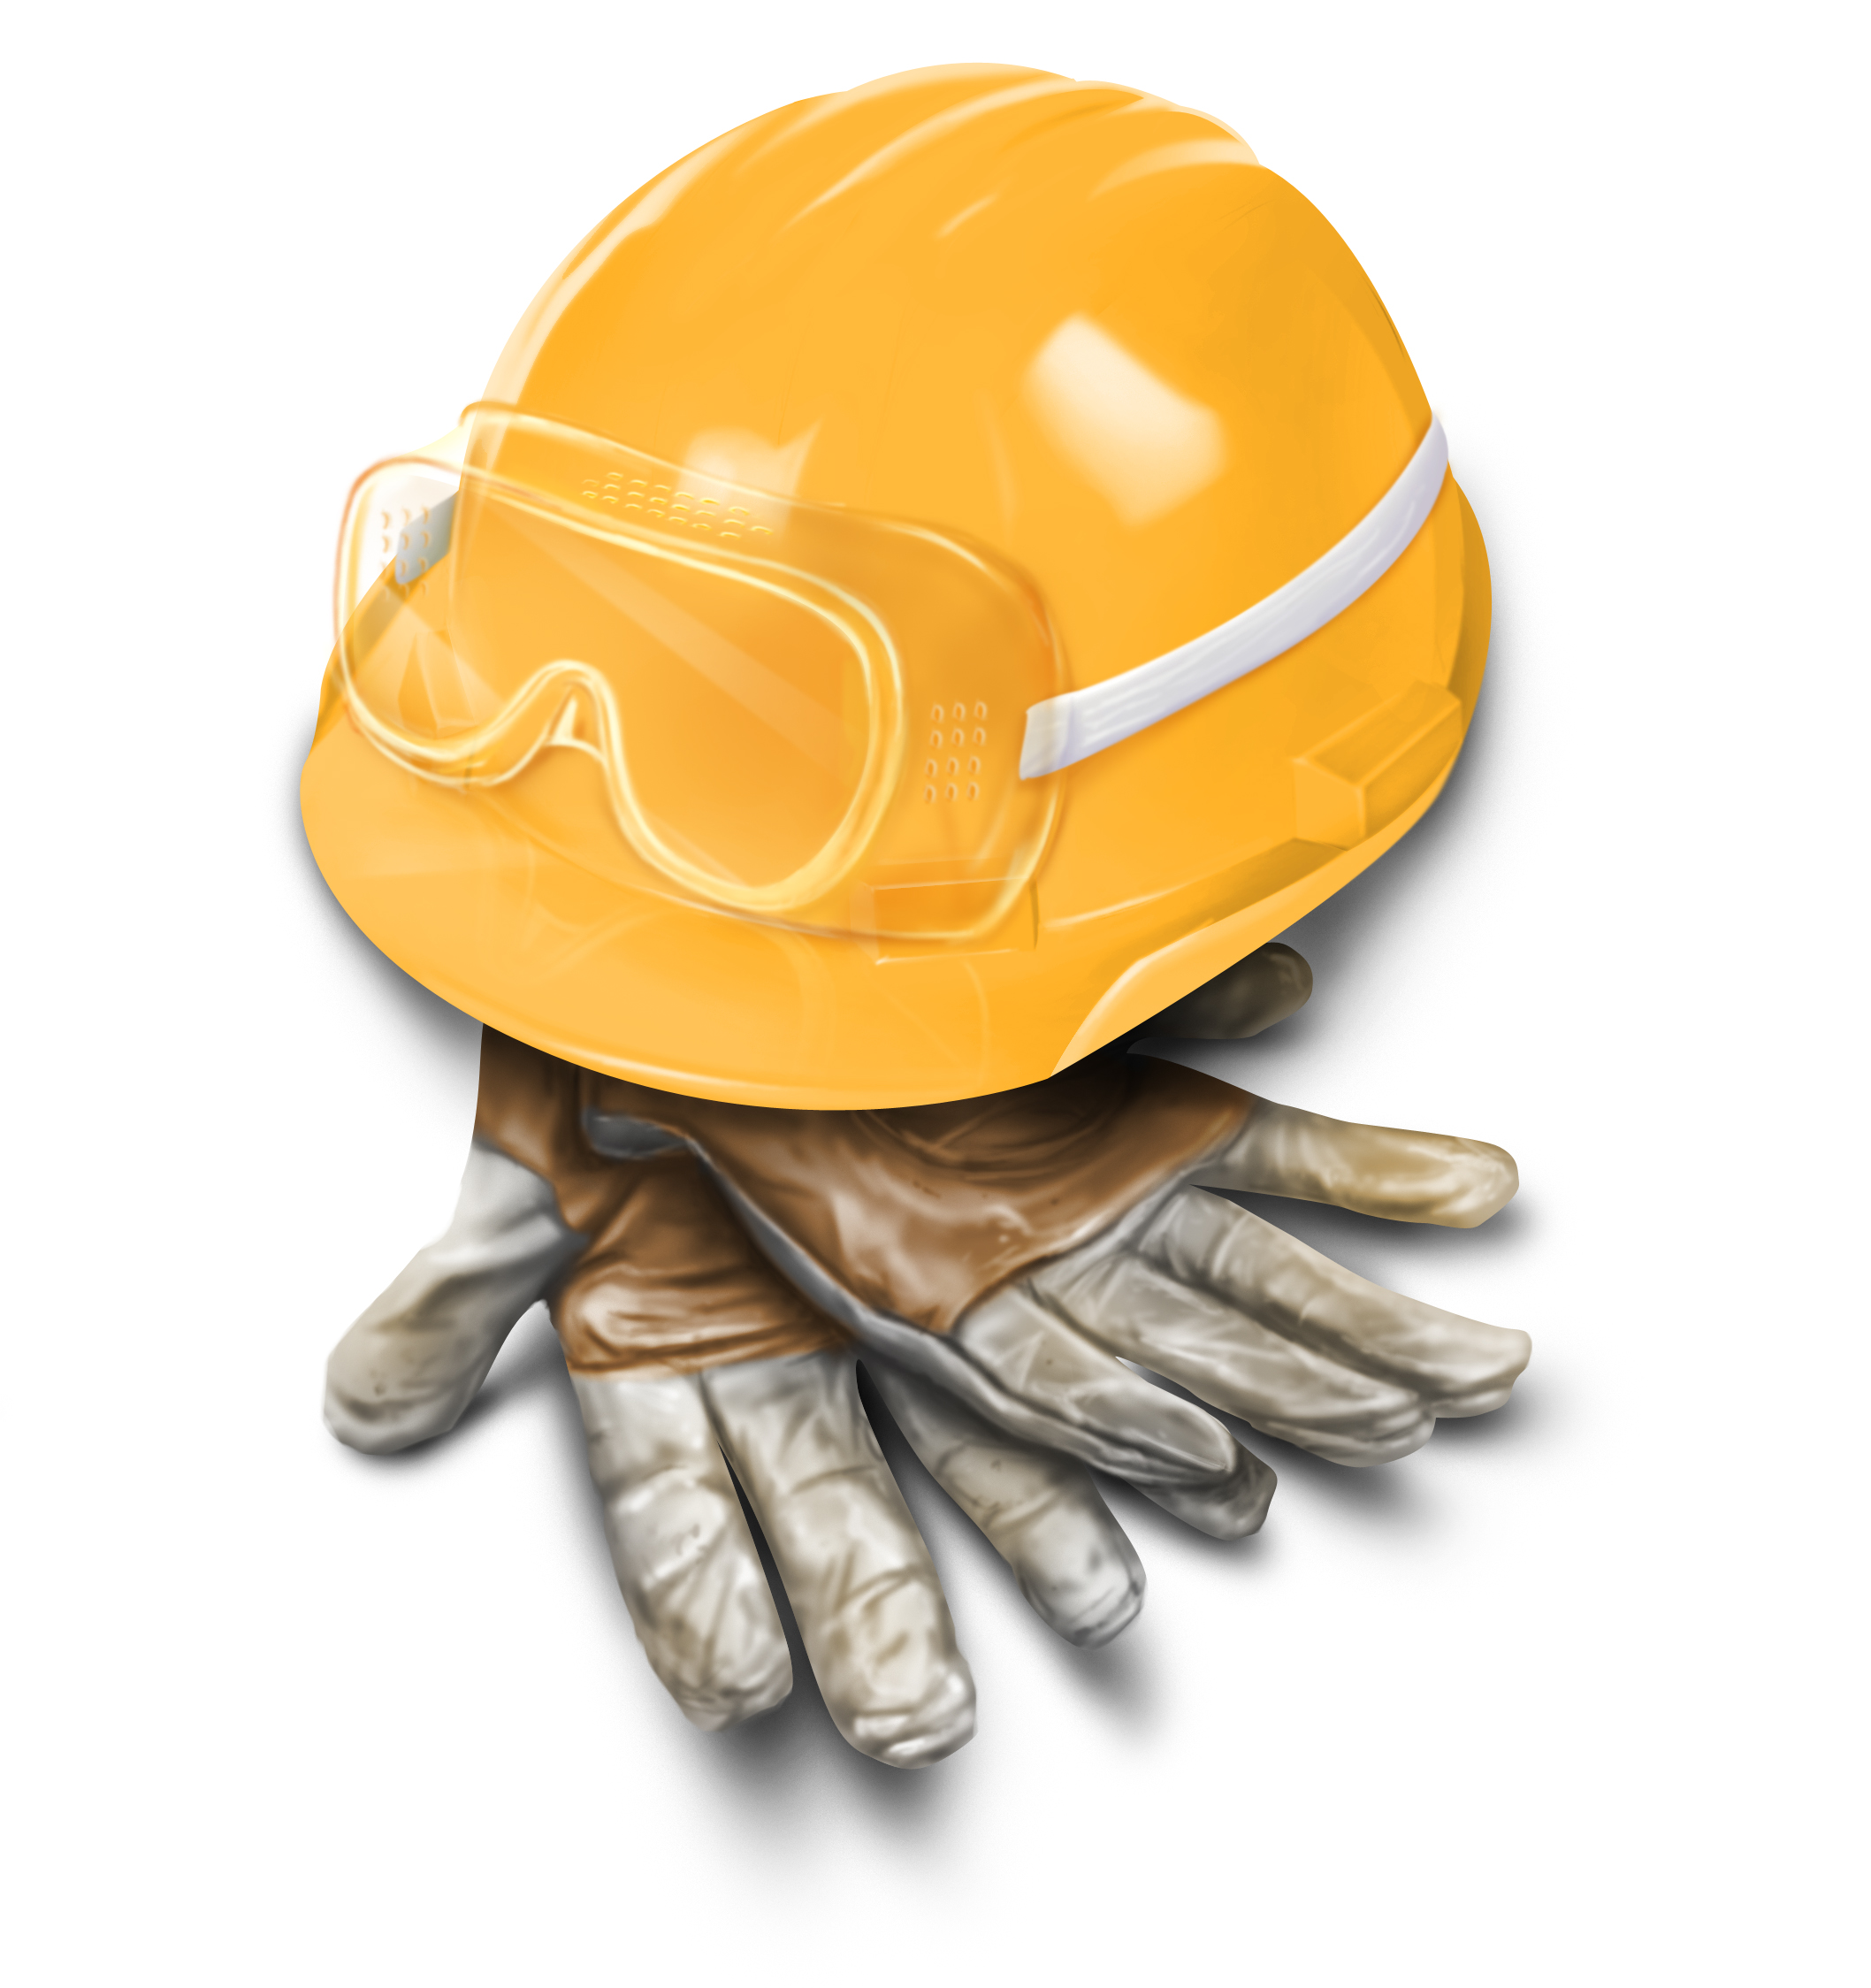 stockvault-occupational-safety-equipment135245